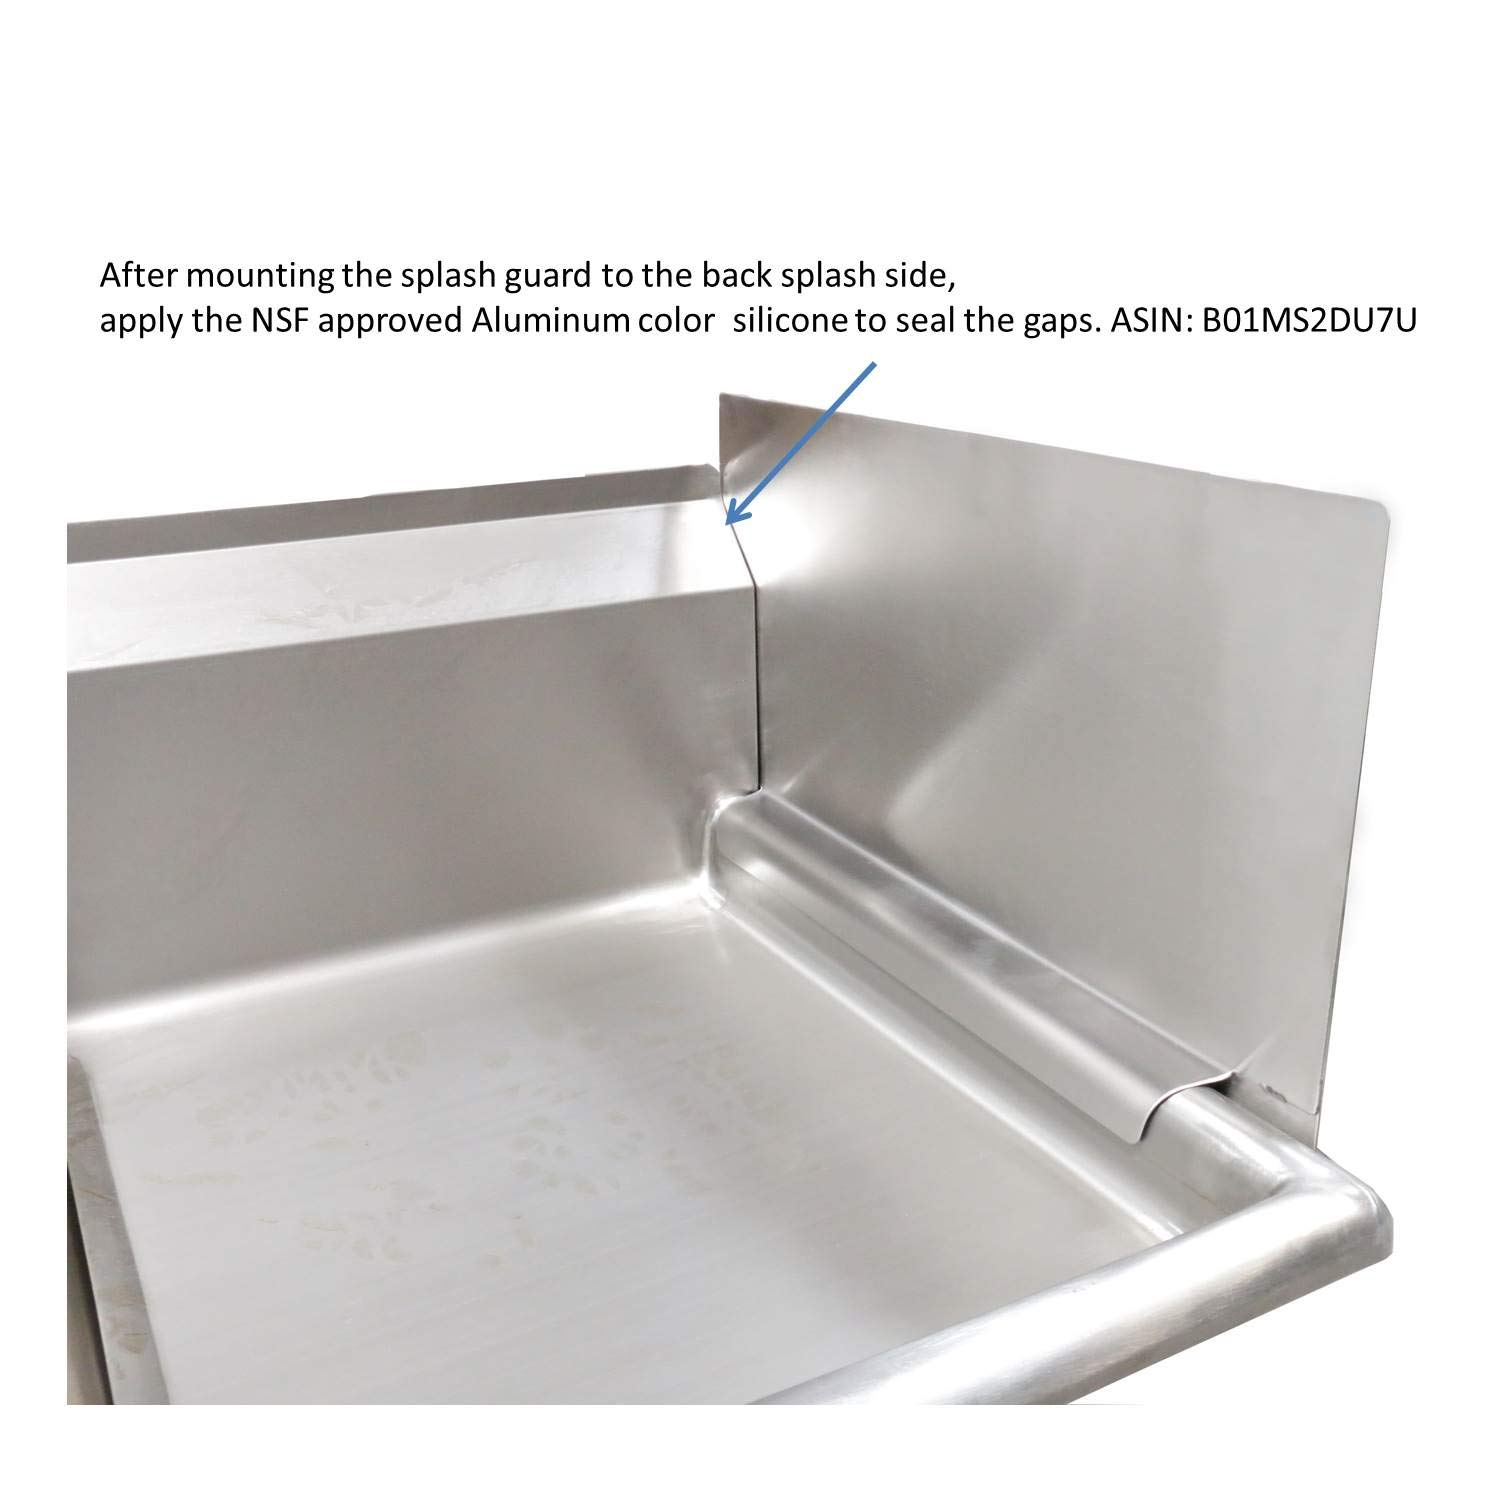 EquipmentBlvd Stainless Steel Reversible & Removable End Splash Guard for 18'' Bowl Size Compartment Sinks (22'' L x 12'' H) by EquipmentBlvd (Image #5)